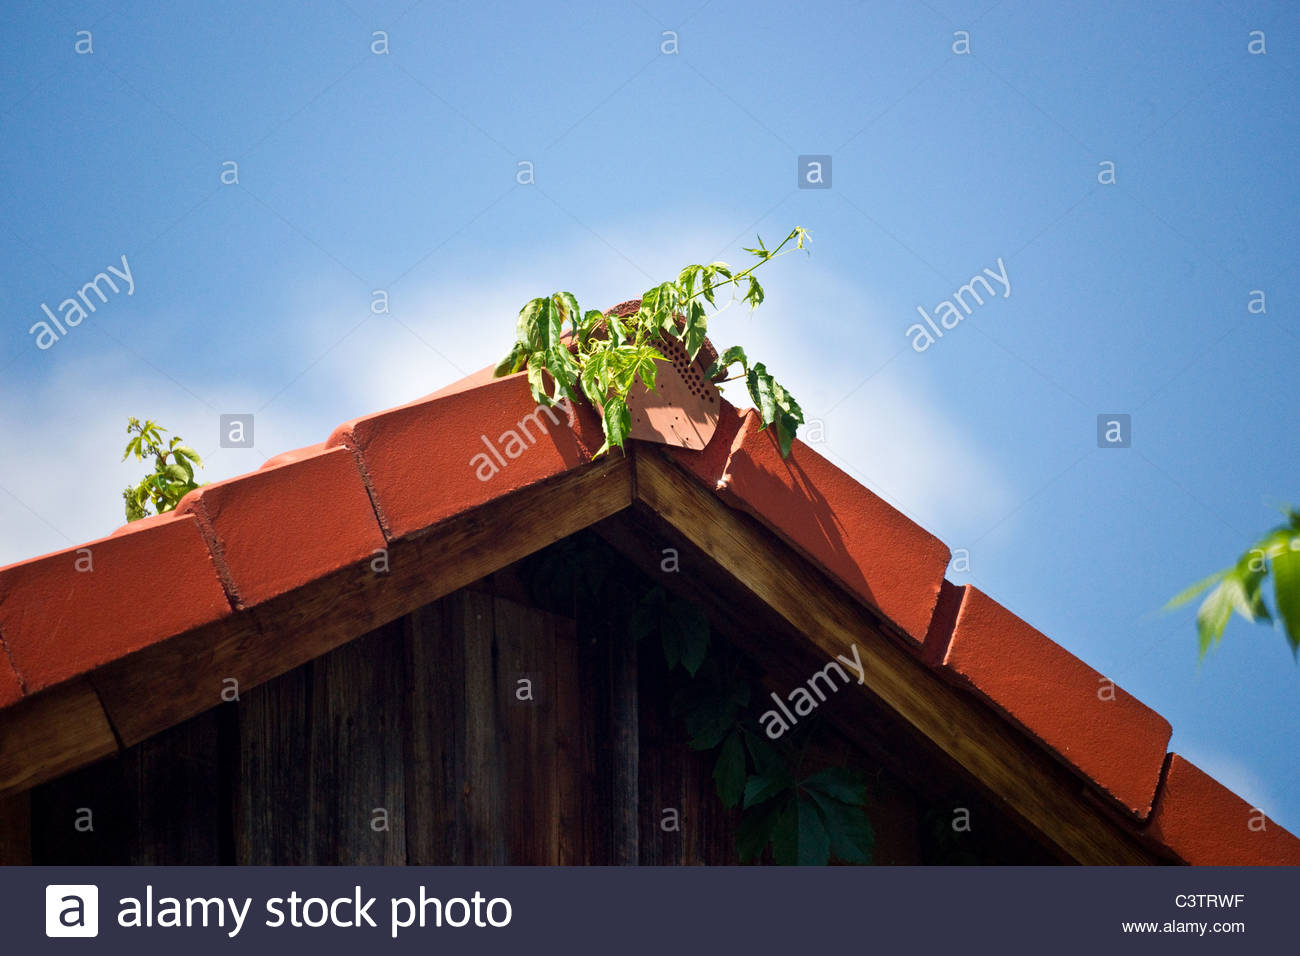 Old wooden barn Bavaria Germany - Stock Image